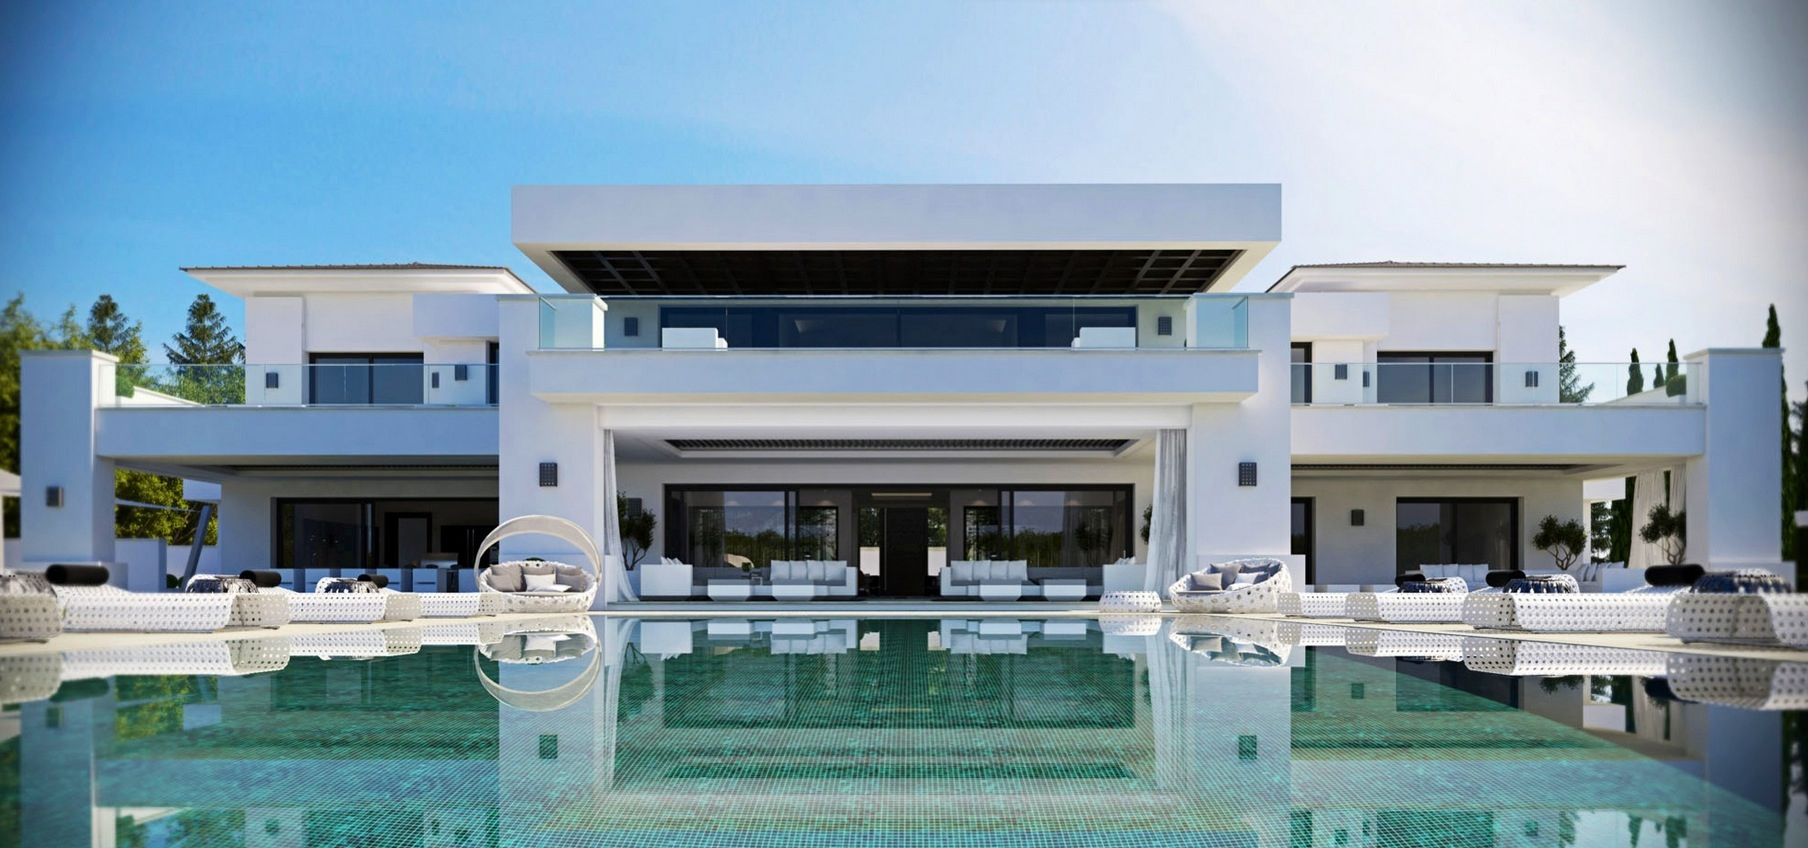 Luxurious 9 bedroom spanish home with indoor outdoor pools for Villa de luxe contemporaine